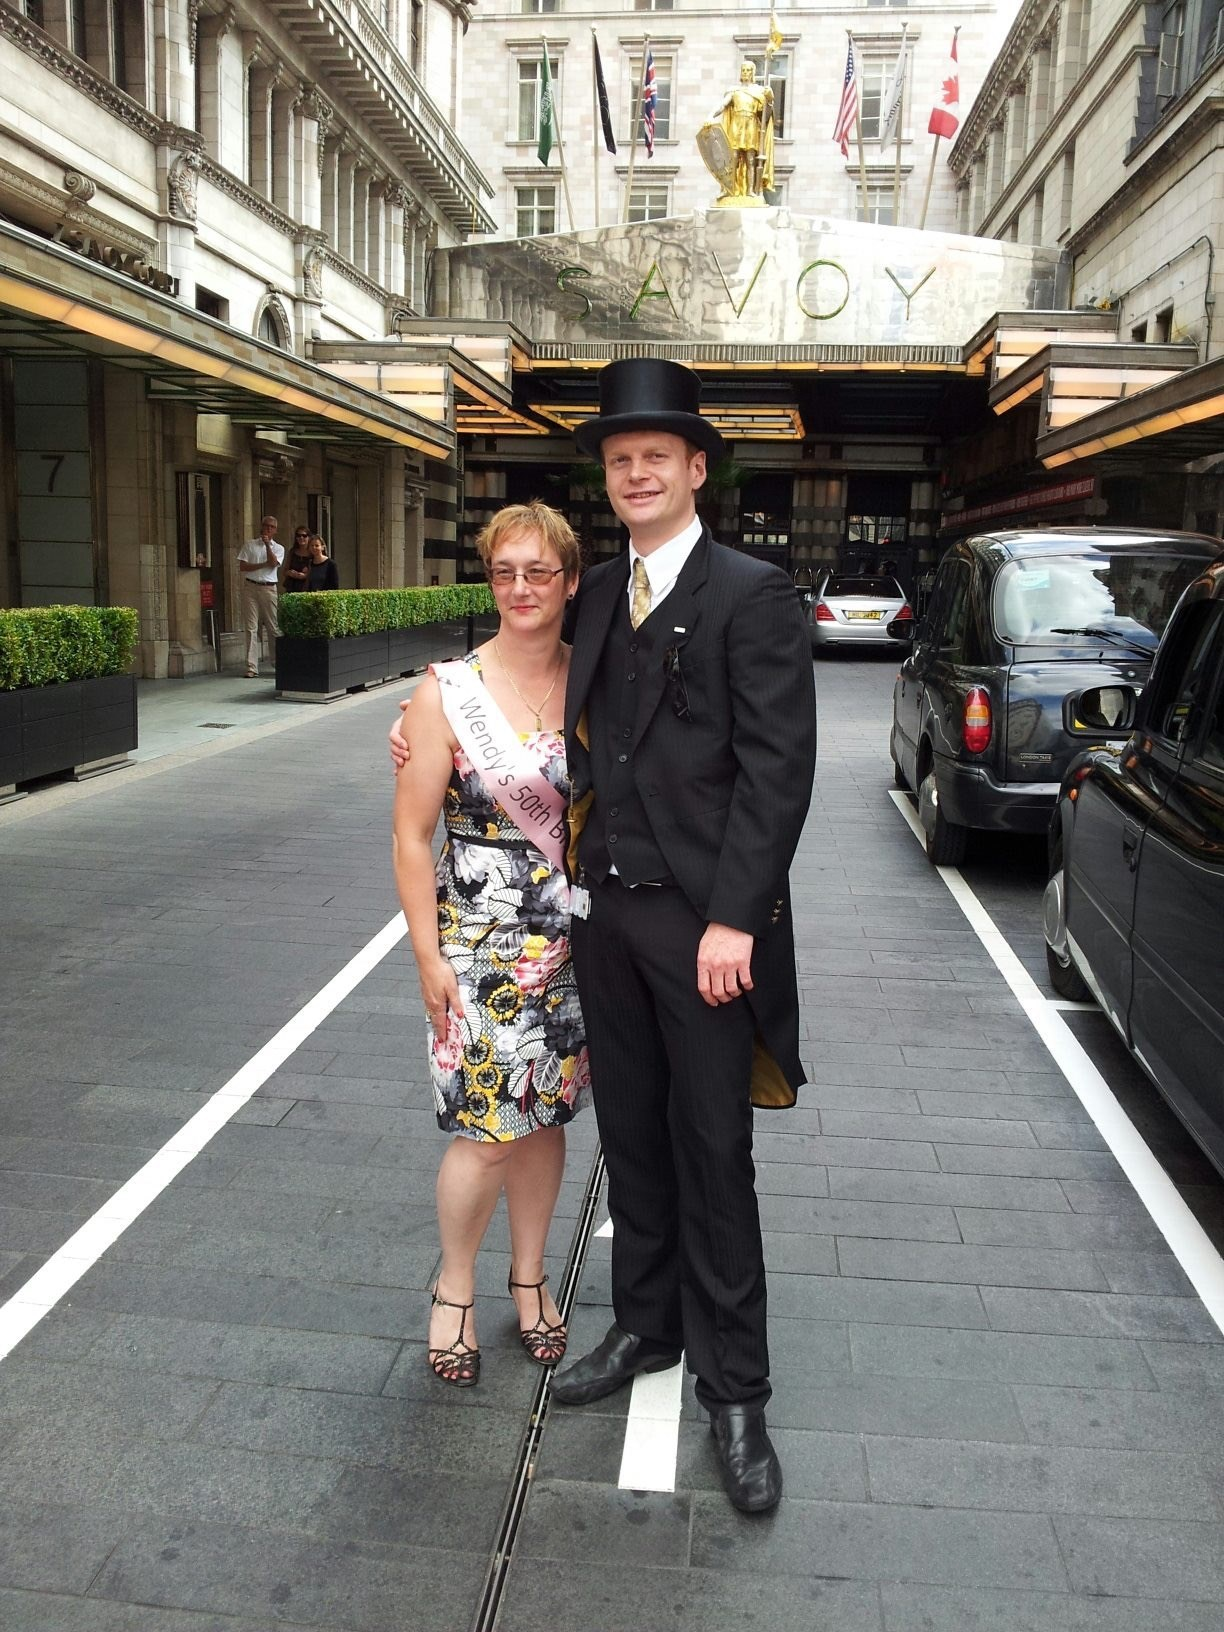 Wendy's 50th Savoy Hotel London July 2013